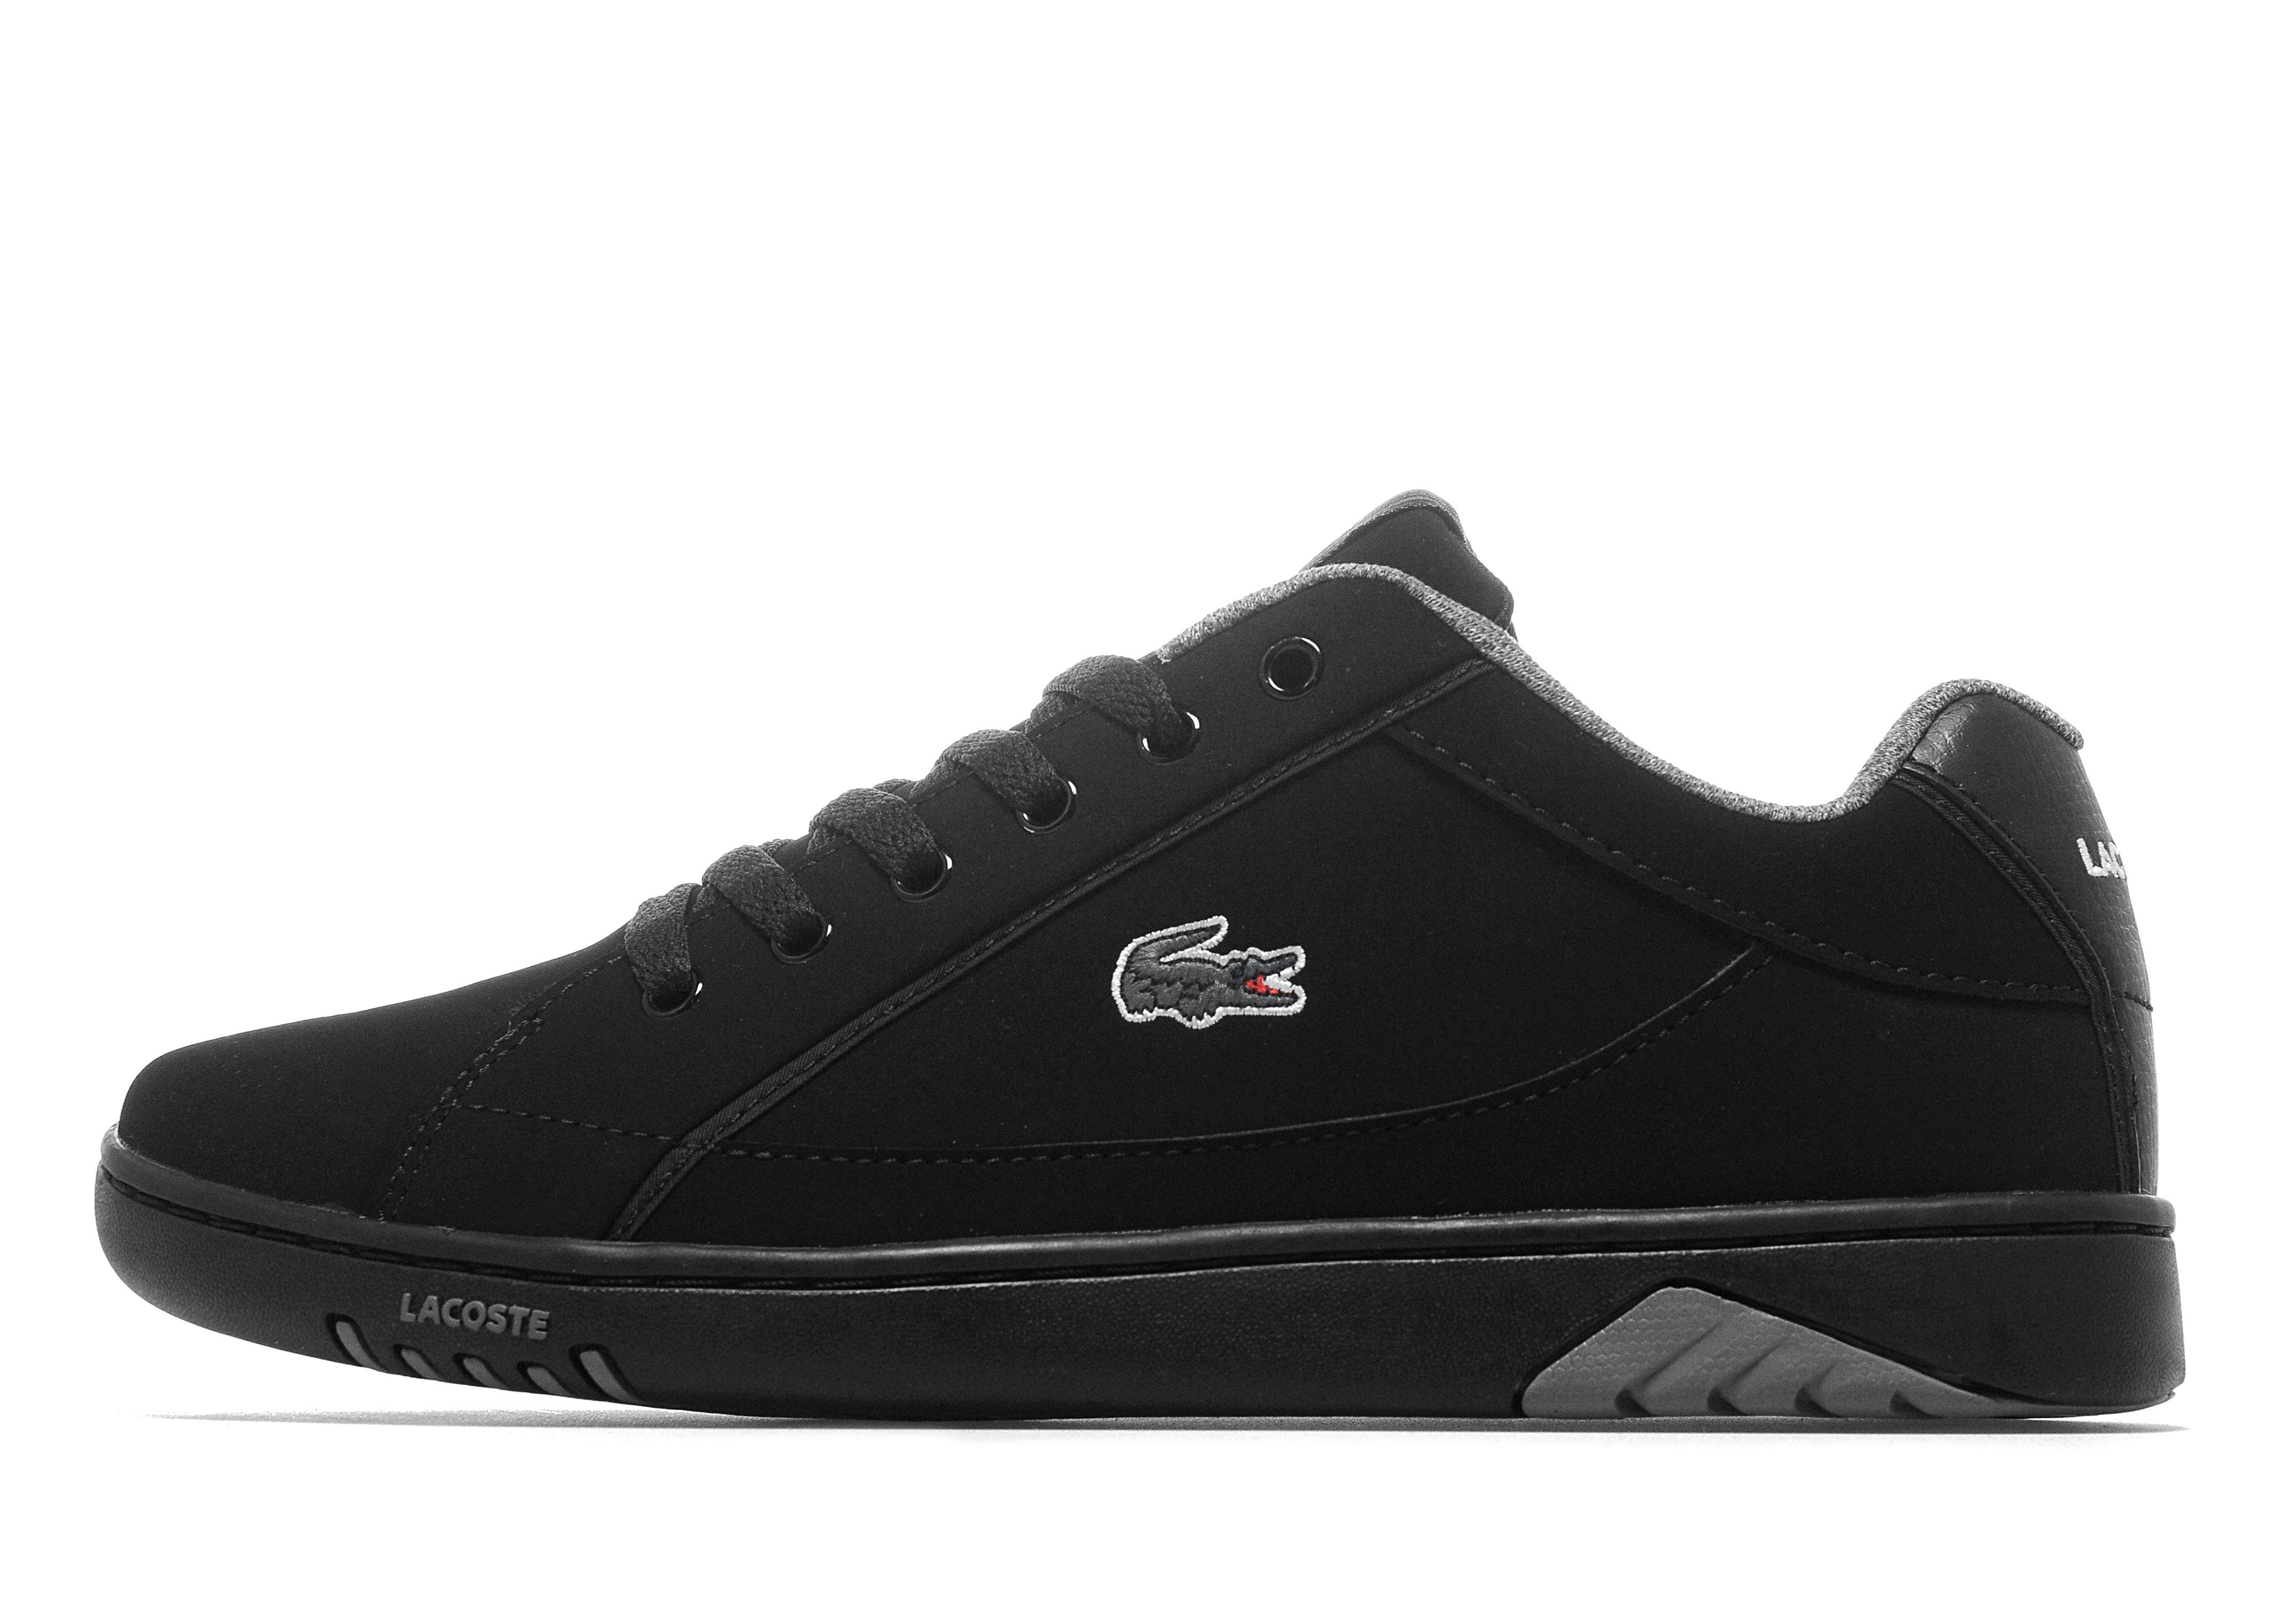 70f82b1a0 60%OFF Lacoste Deviation